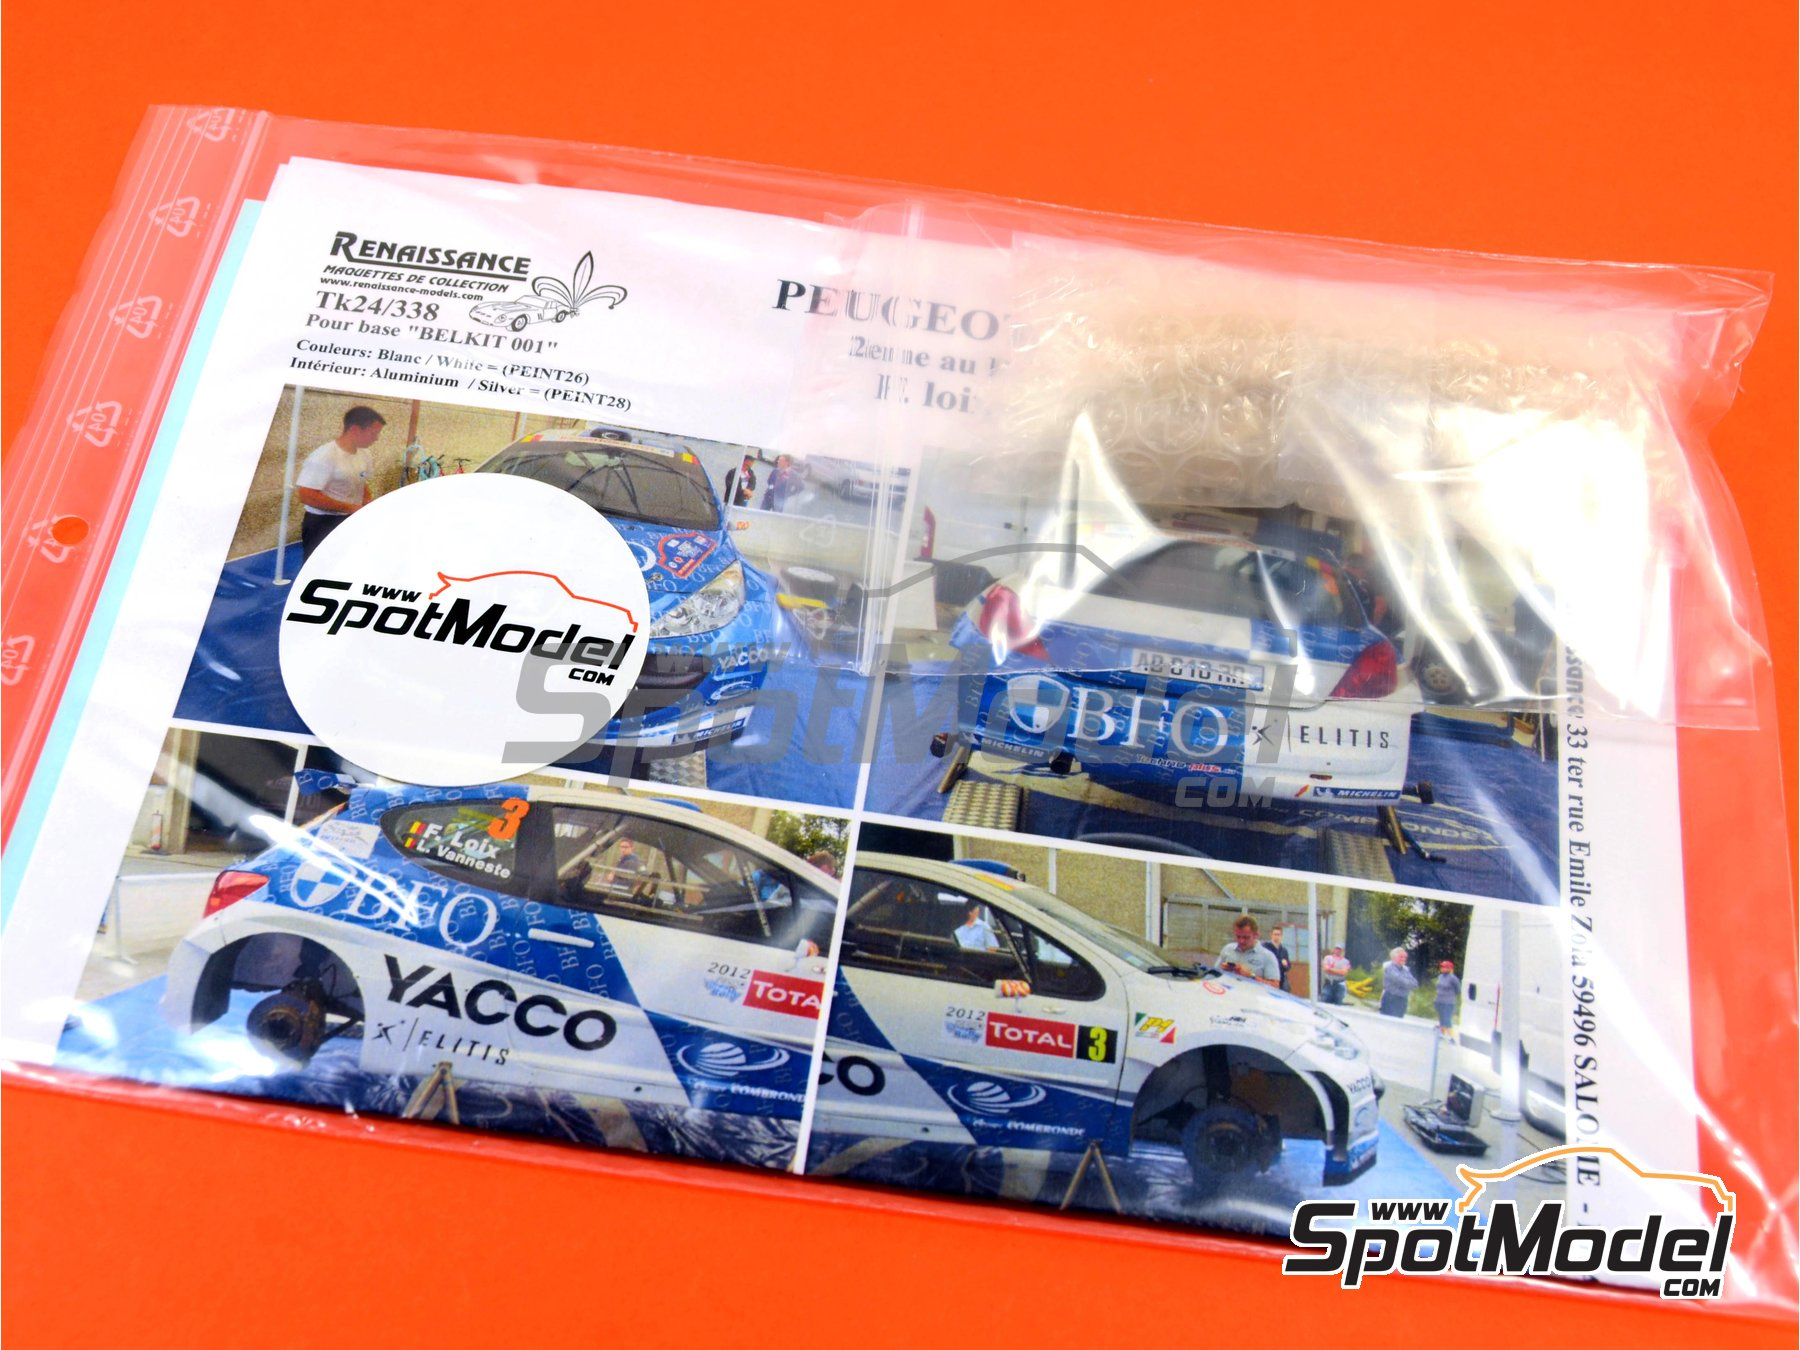 Image 1: Peugeot 207 S2000 BFO Yacco - Ypres Rally 2012 | Marking / livery in 1/24 scale manufactured by Renaissance Models (ref. TK24-338)